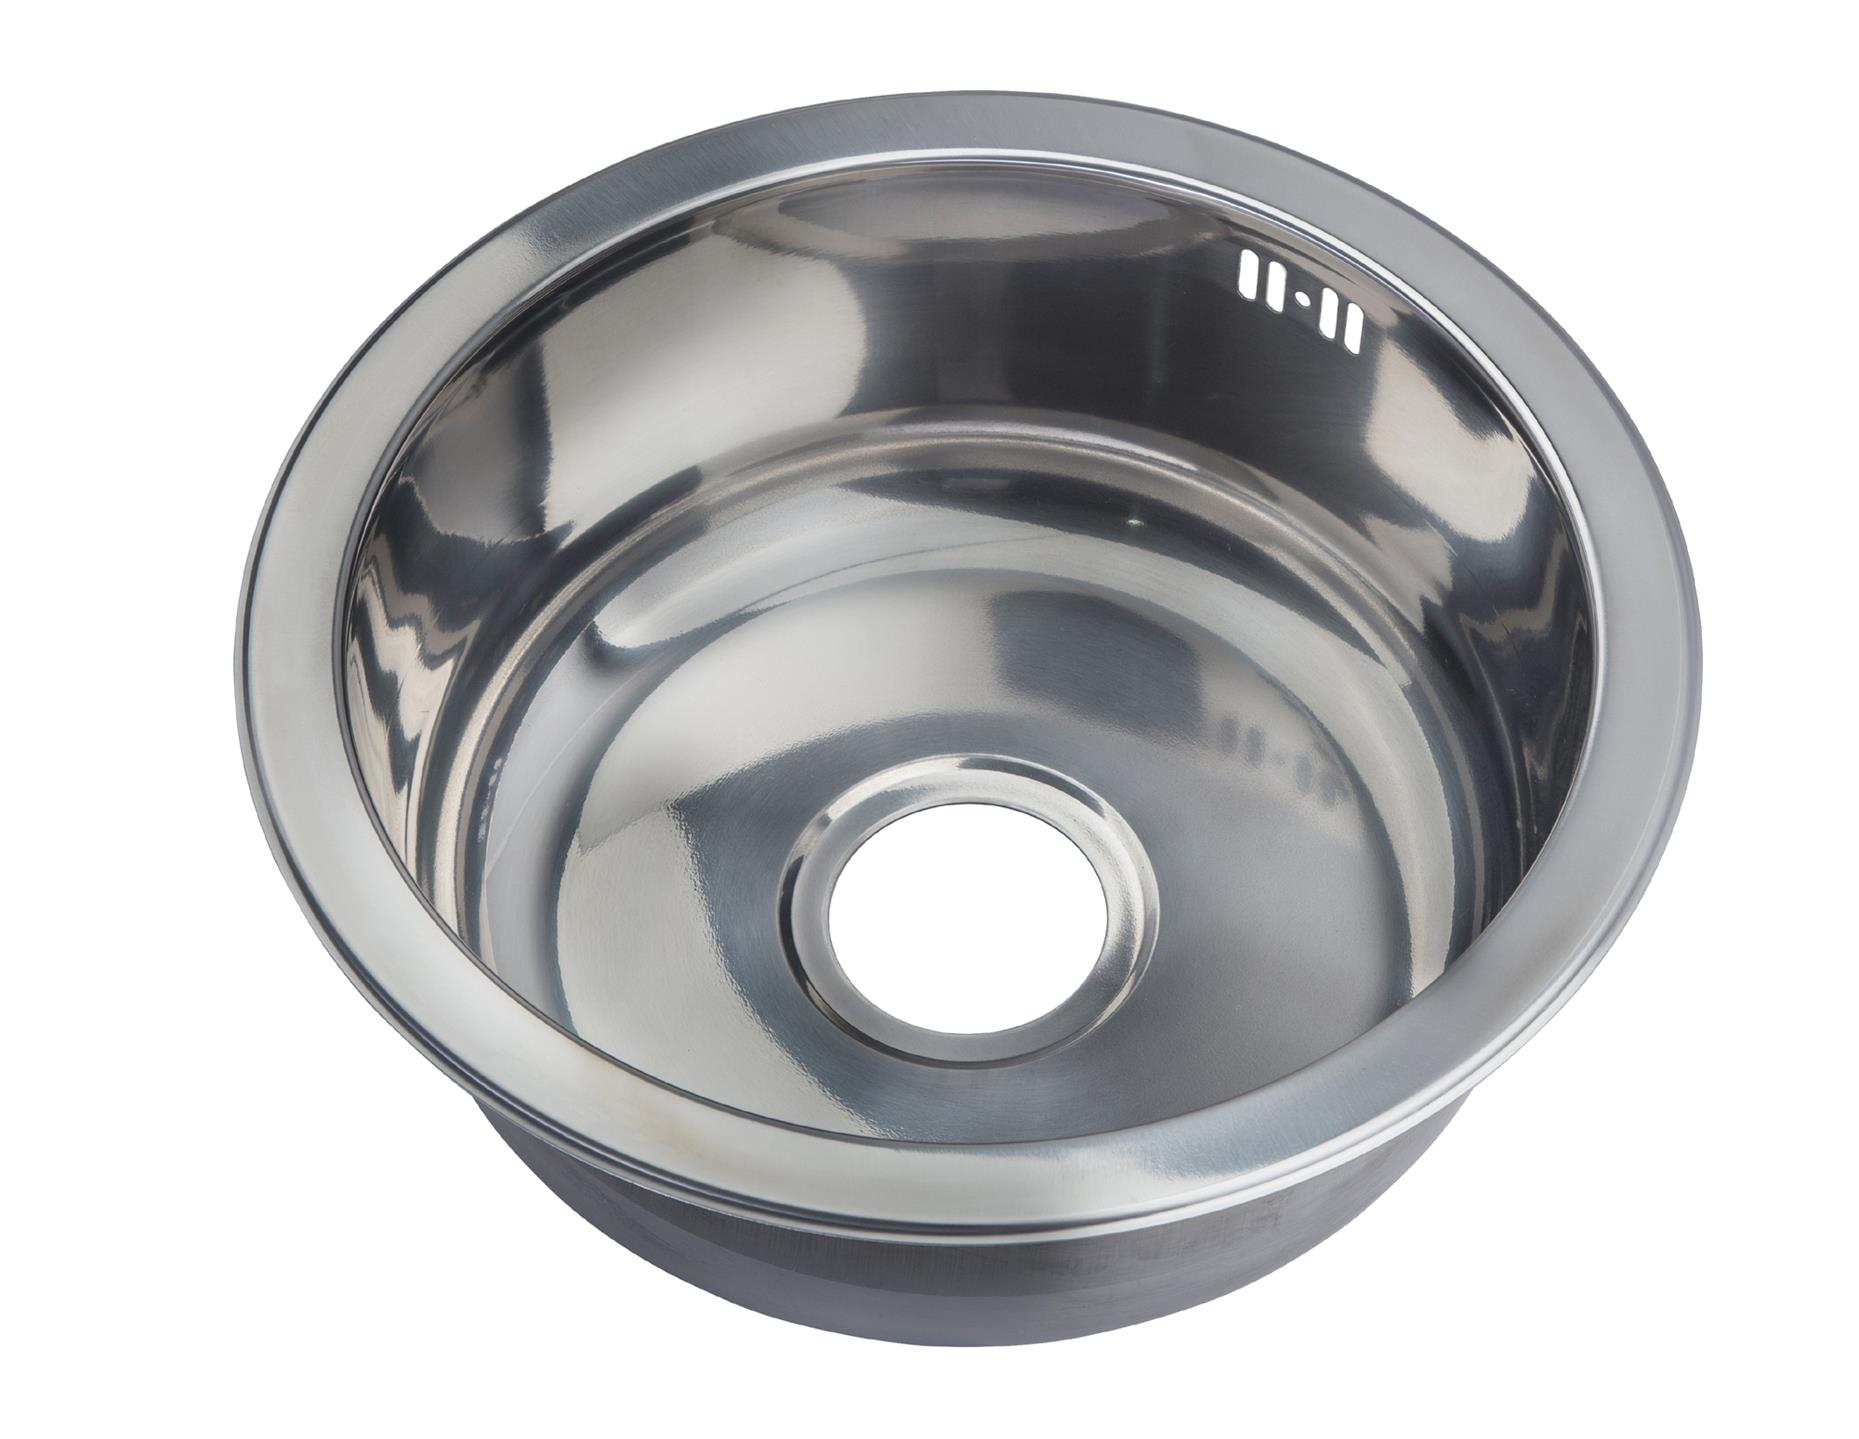 pact sink single 1 round bowl inset stainless steel boat